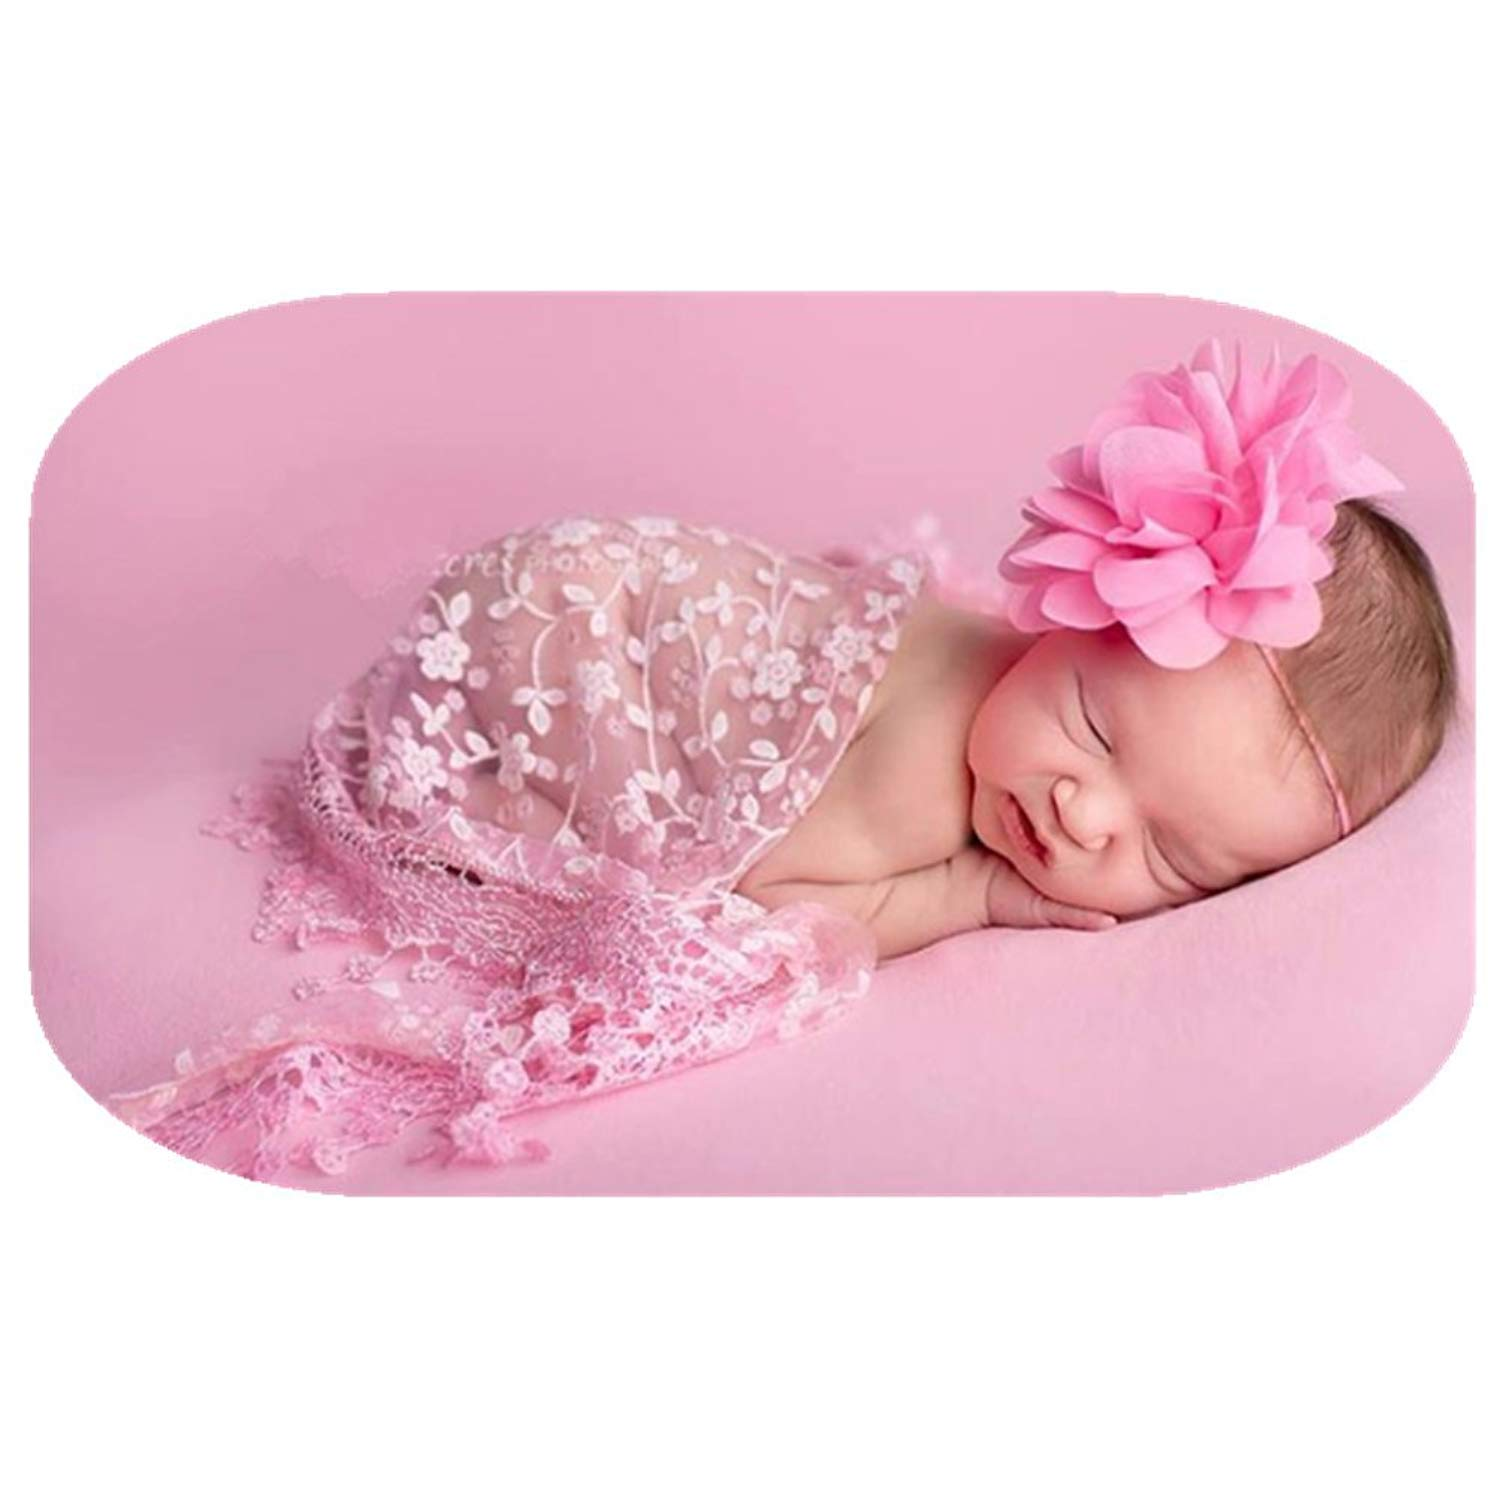 Coberllus Newborn Boy Girl Photography Props Newborn Wraps Baby Photo Shoot Outfits Wrap Lace Yarn Cloth Blanket